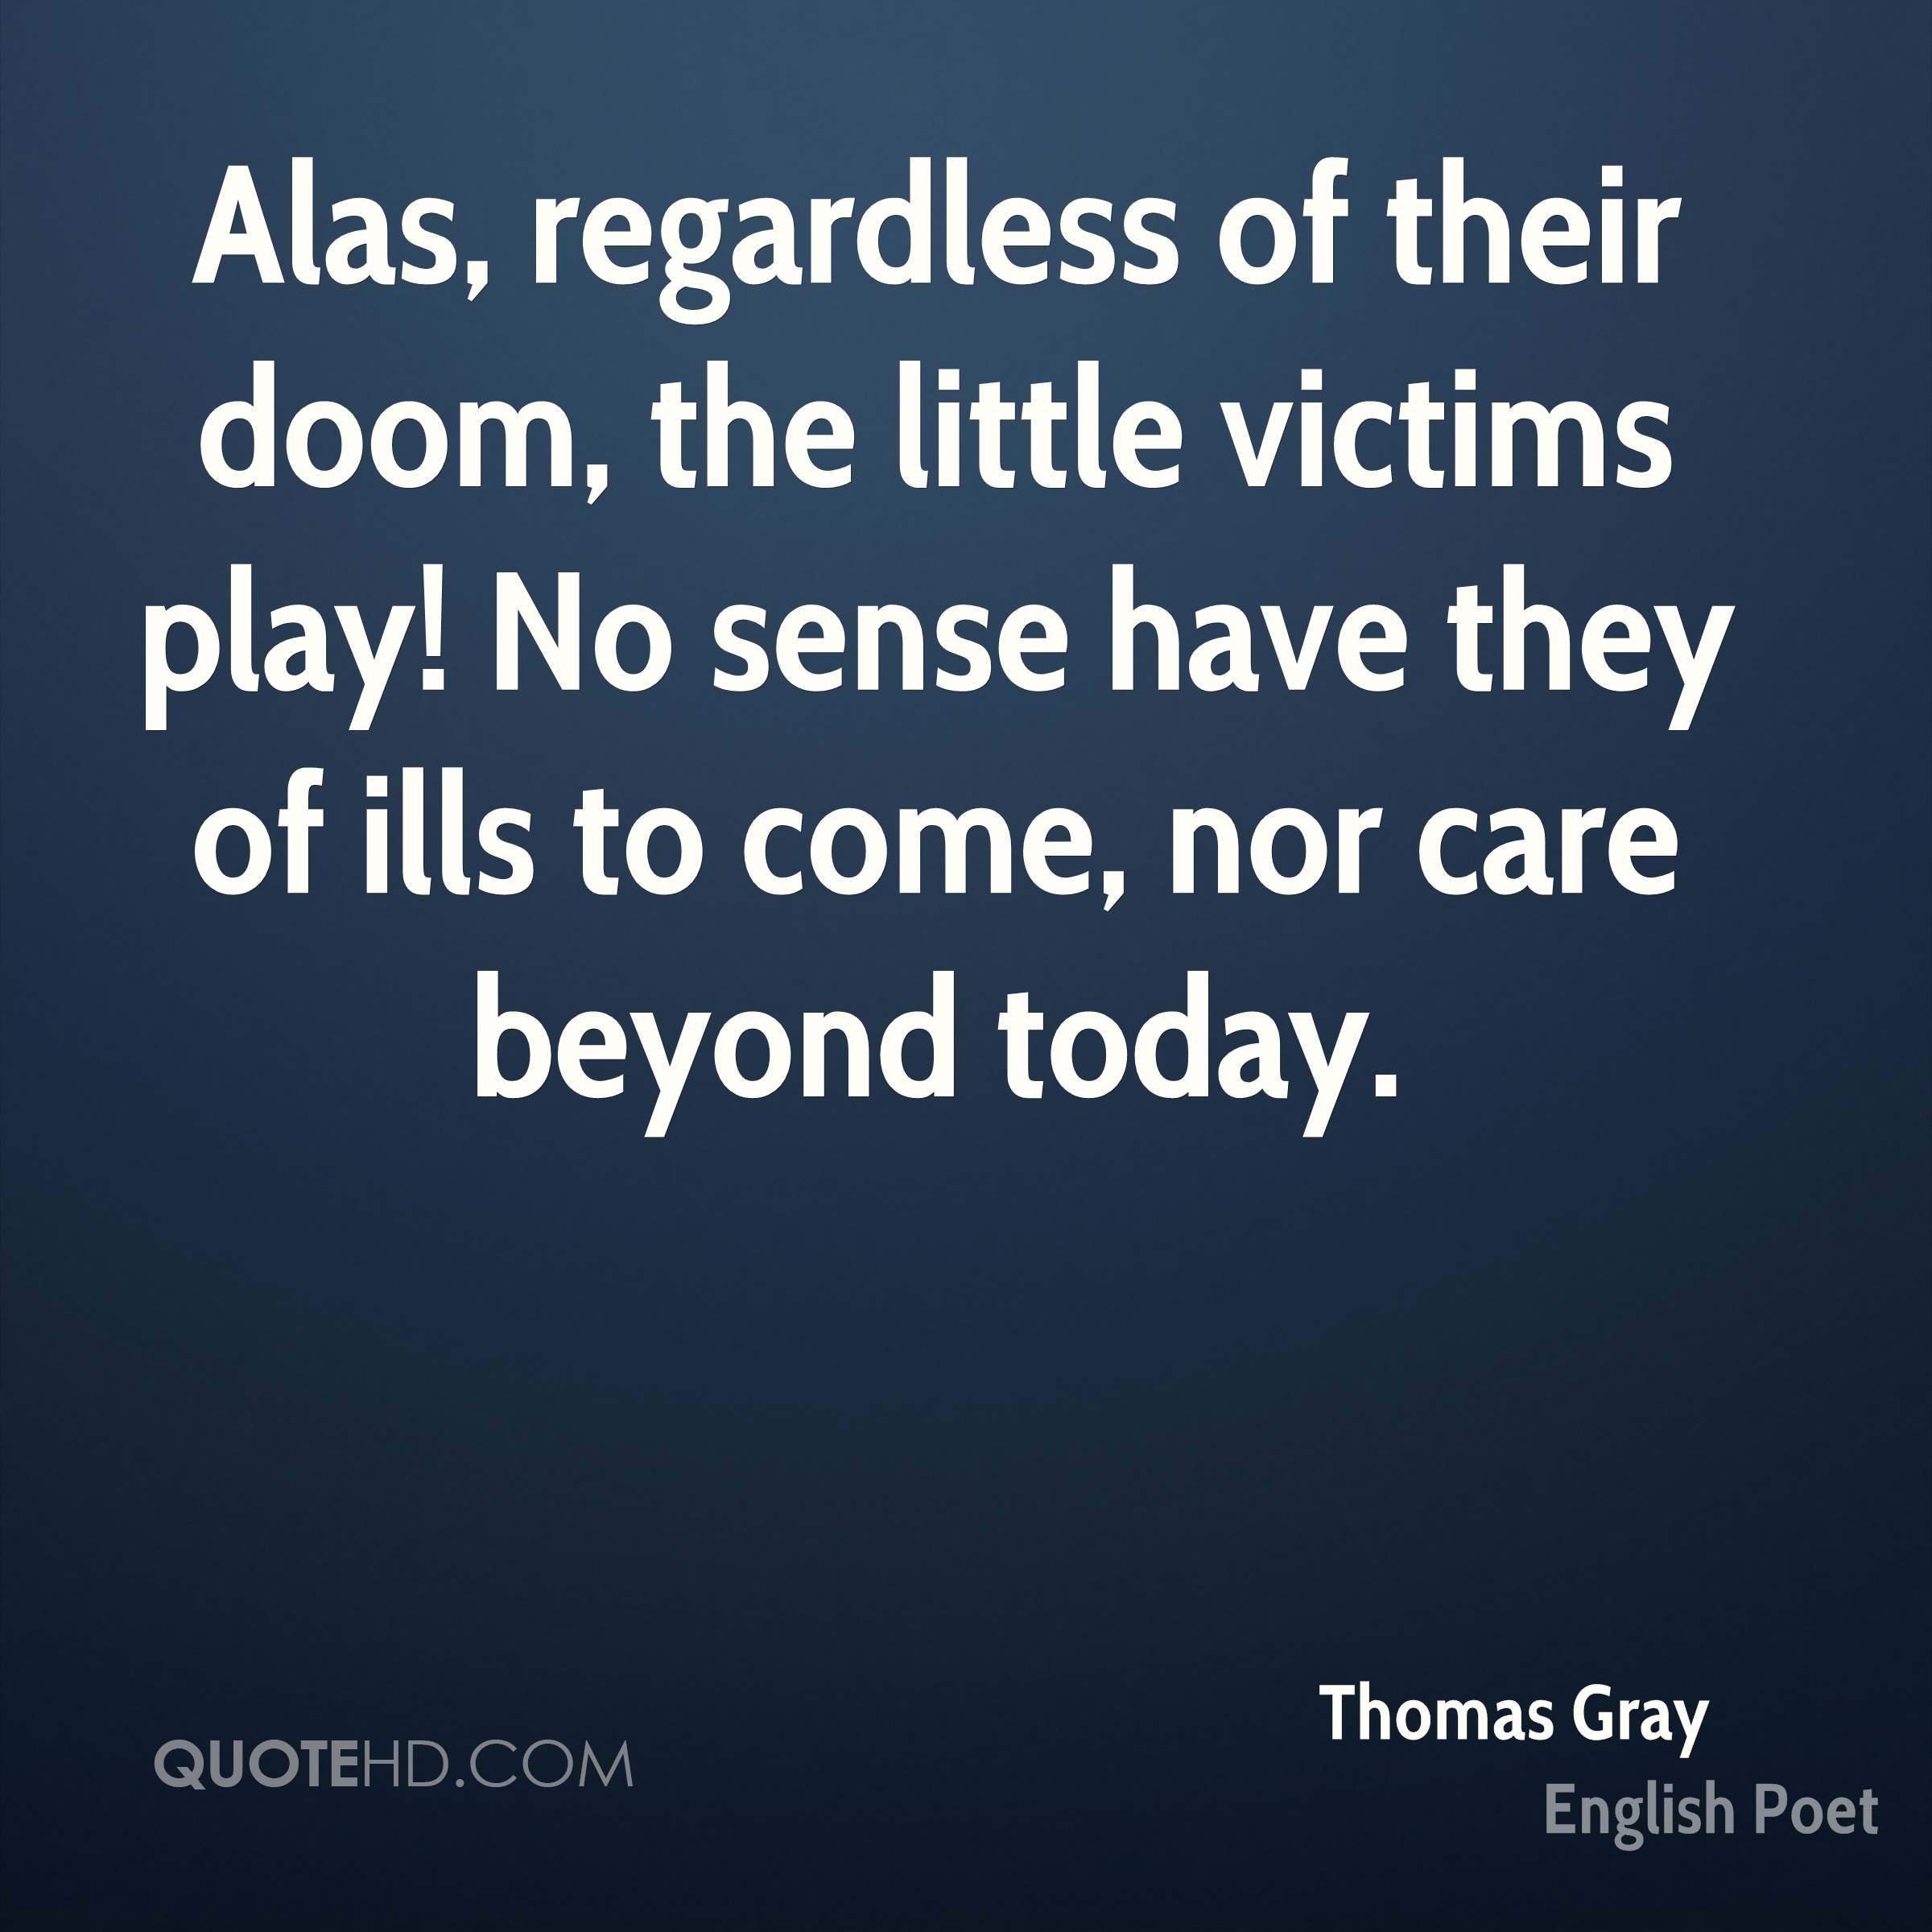 Alas, regardless of their doom, the little victims play! No sense have they of ills to come, nor care beyond today.